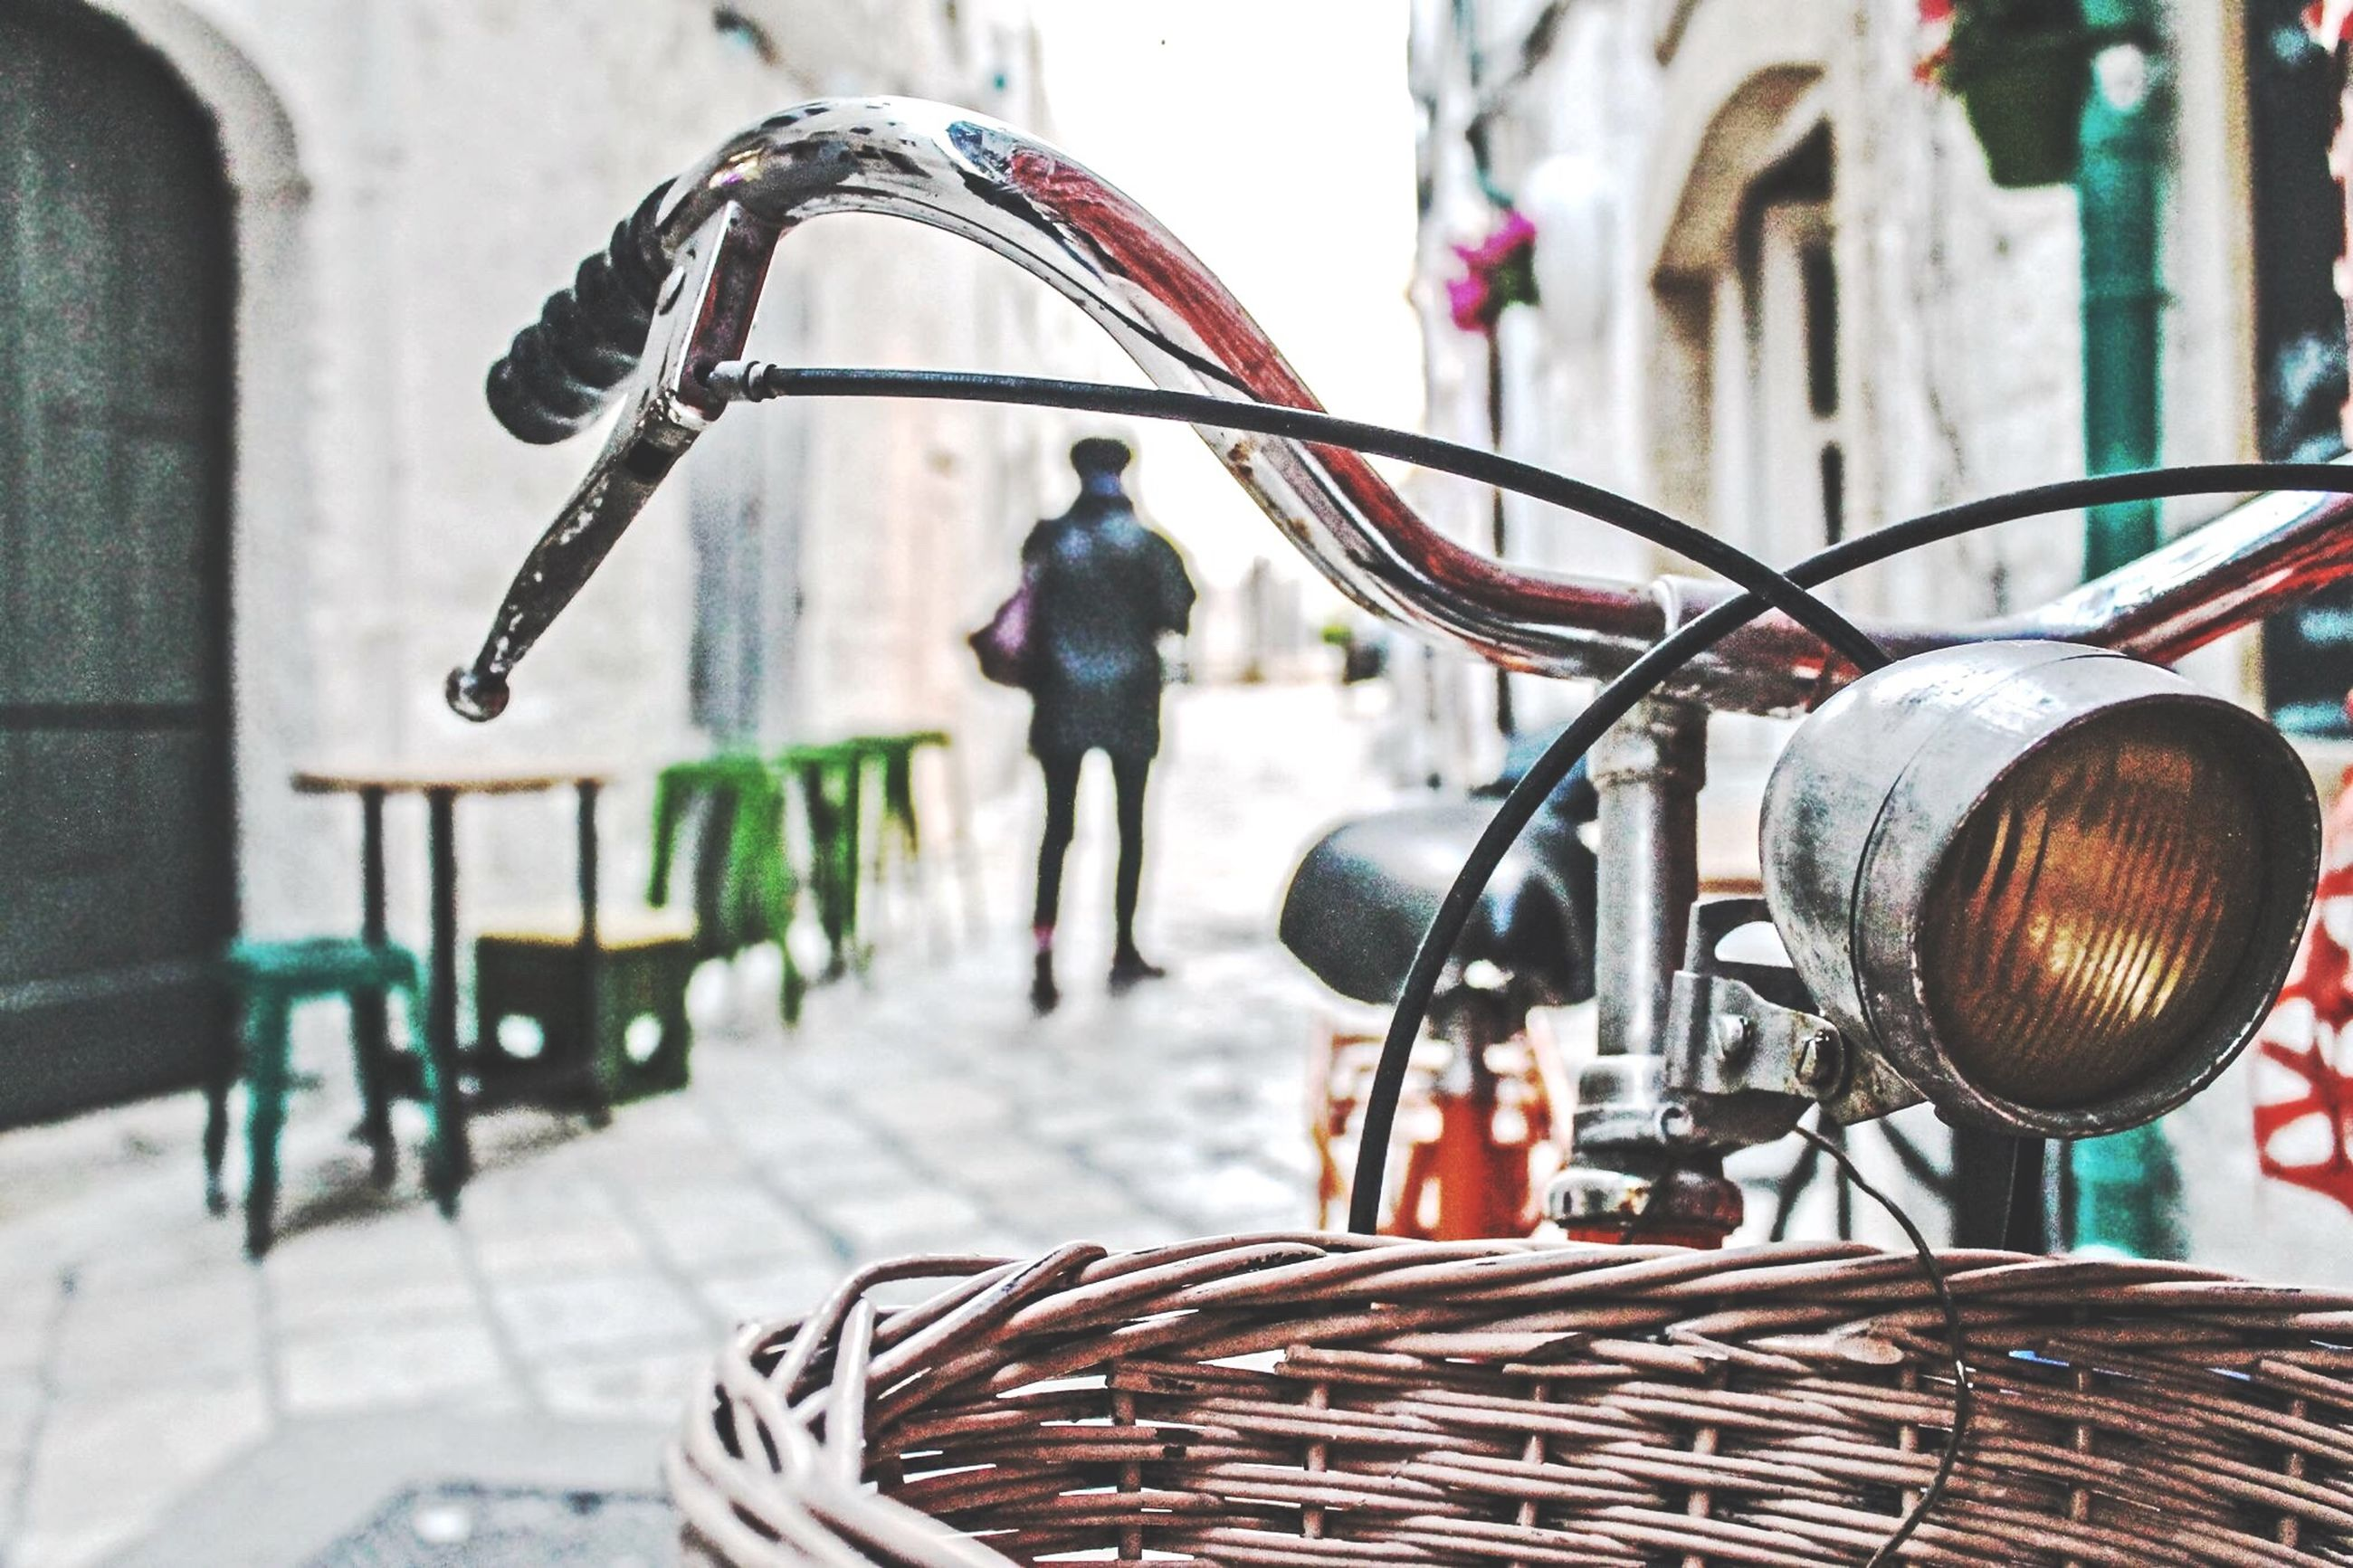 bicycle, land vehicle, metal, focus on foreground, mode of transport, transportation, men, day, indoors, street, technology, stationary, rear view, incidental people, built structure, equipment, close-up